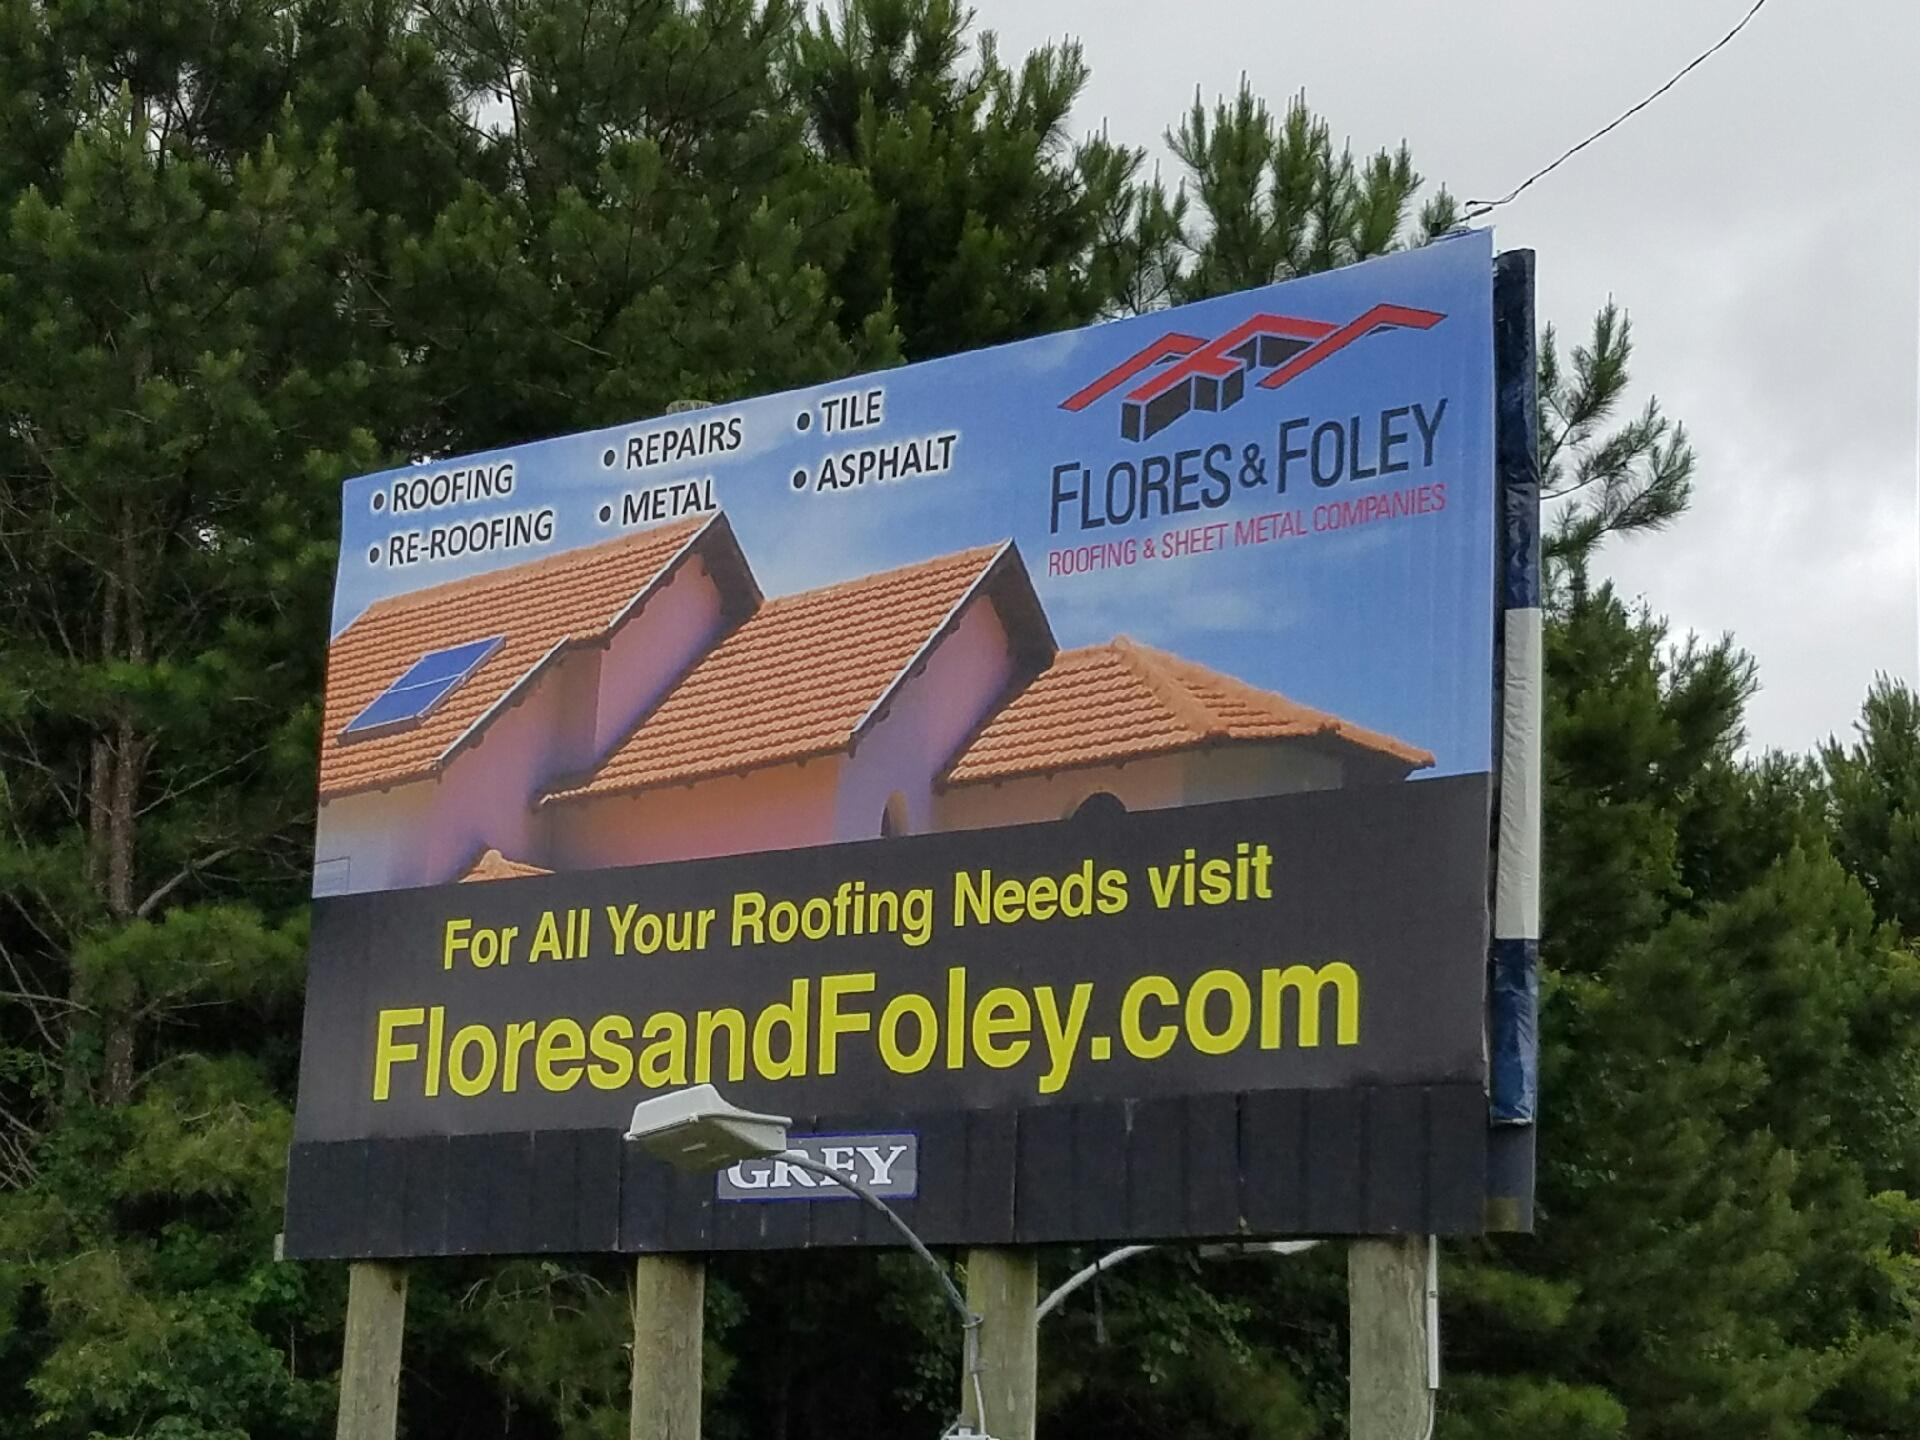 Flores And Foley Roofing Residential And Commercial Roofing Serving Wilmington Nc Grey Outdoor Billboards